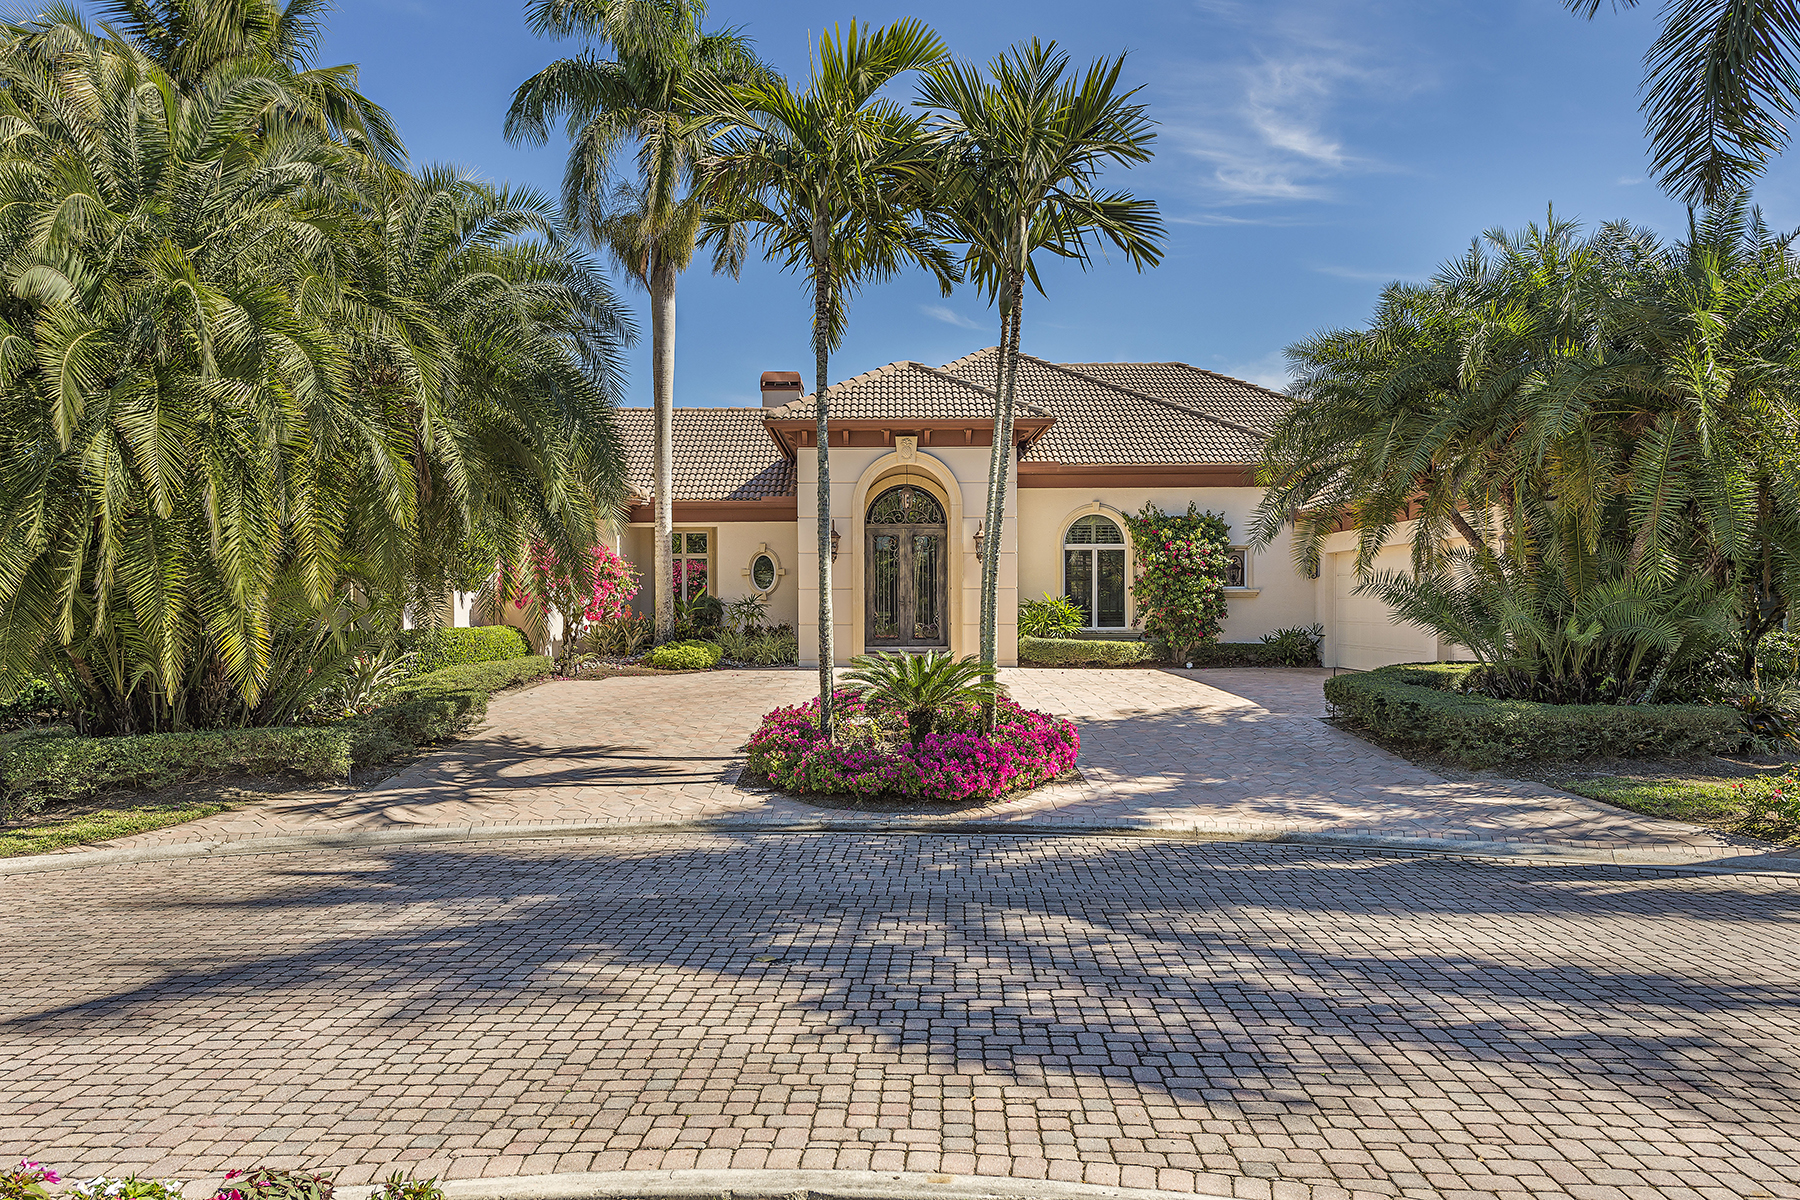 Single Family Home for Sale at Naples 1932 Cocoplum Way Grey Oaks, Naples, Florida, 34105 United States